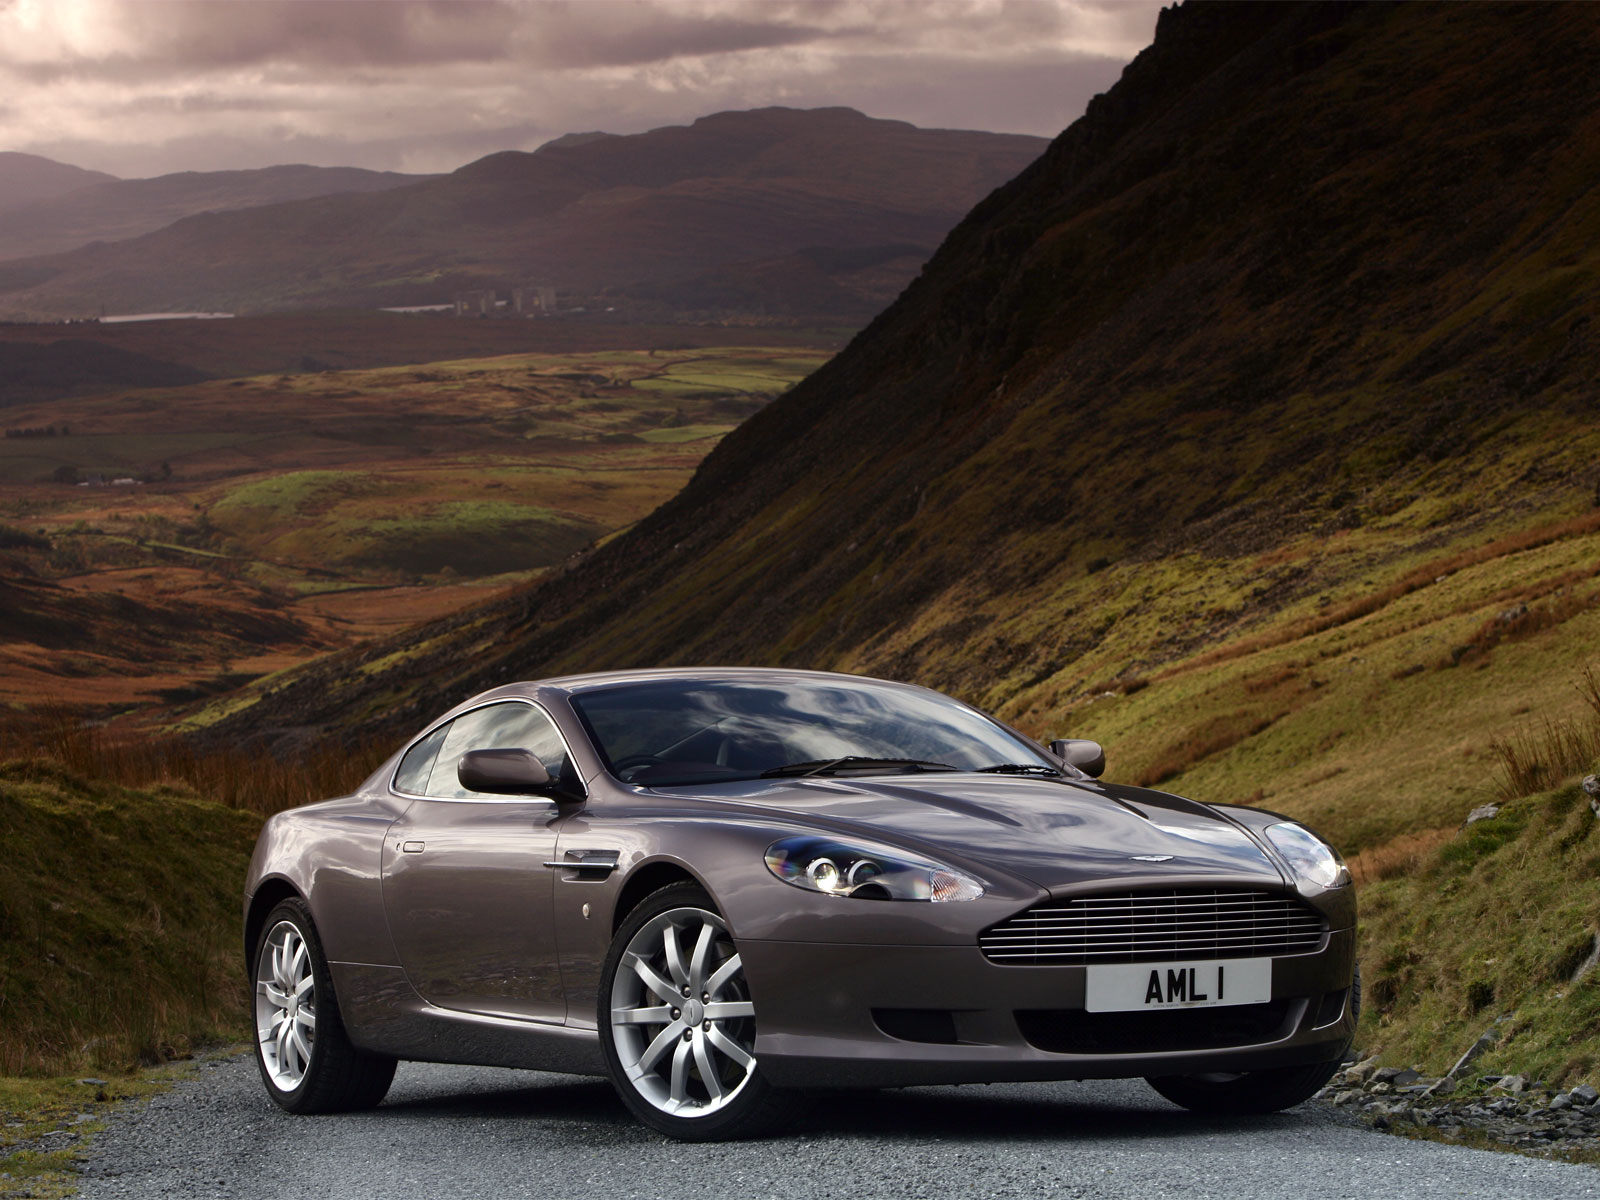 sport cars concept cars cars gallery aston martin db9. Black Bedroom Furniture Sets. Home Design Ideas